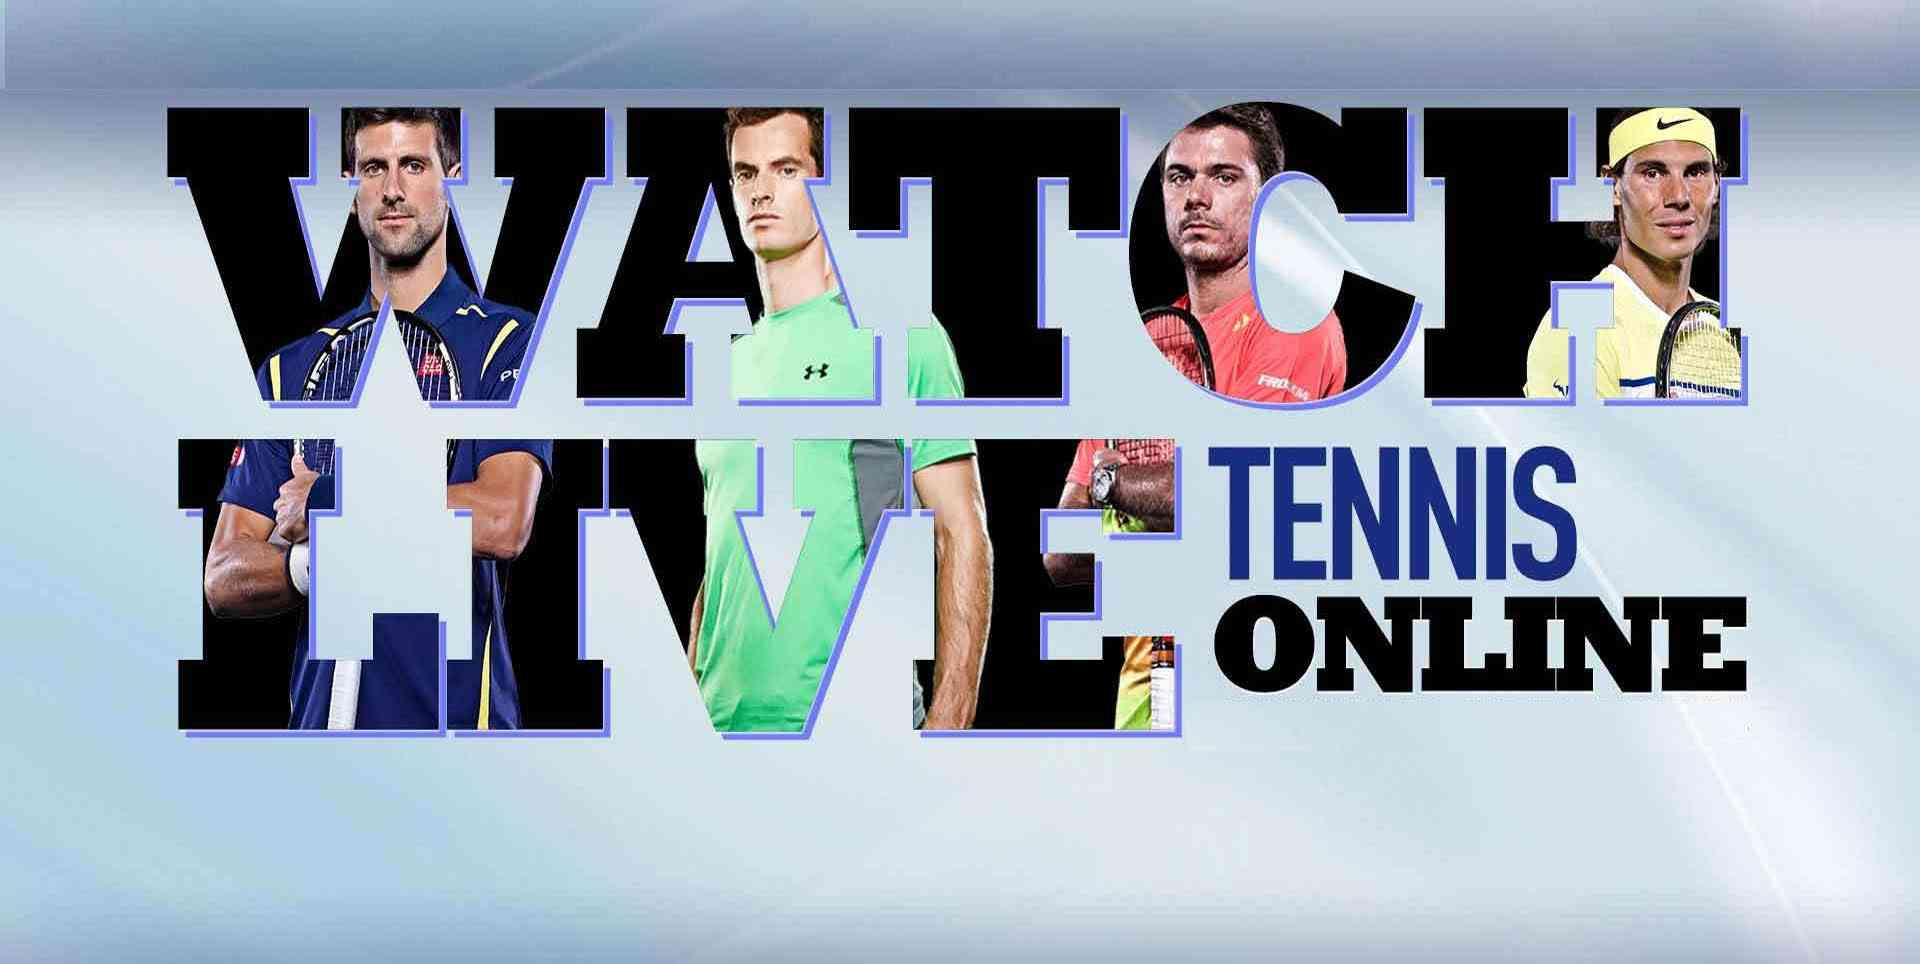 Watch ATP Campbells Hall of Fame Tennis Championship Online